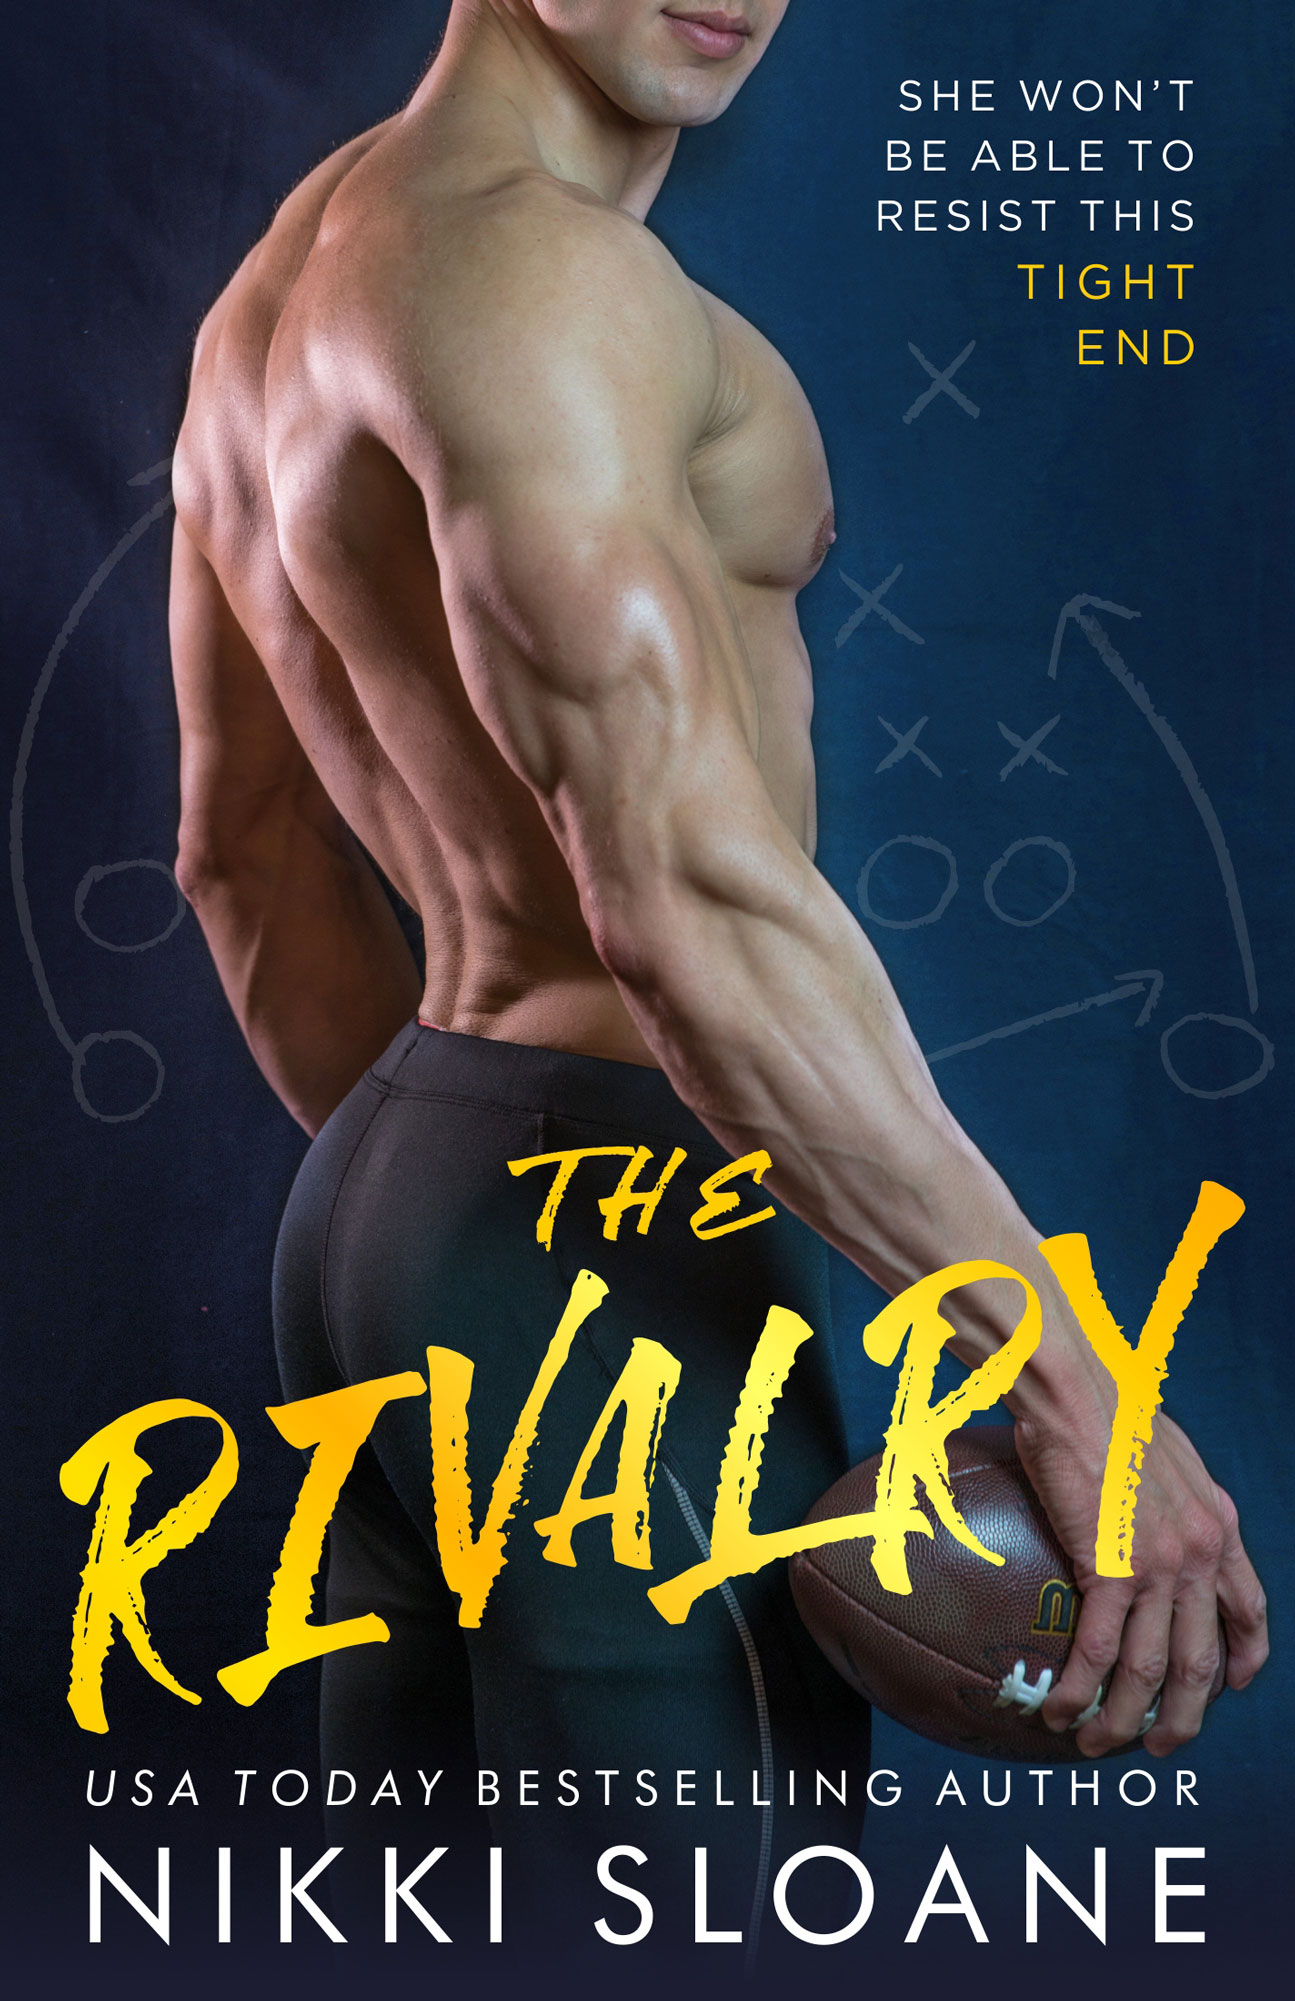 RivalryCover_Kindle.jpg